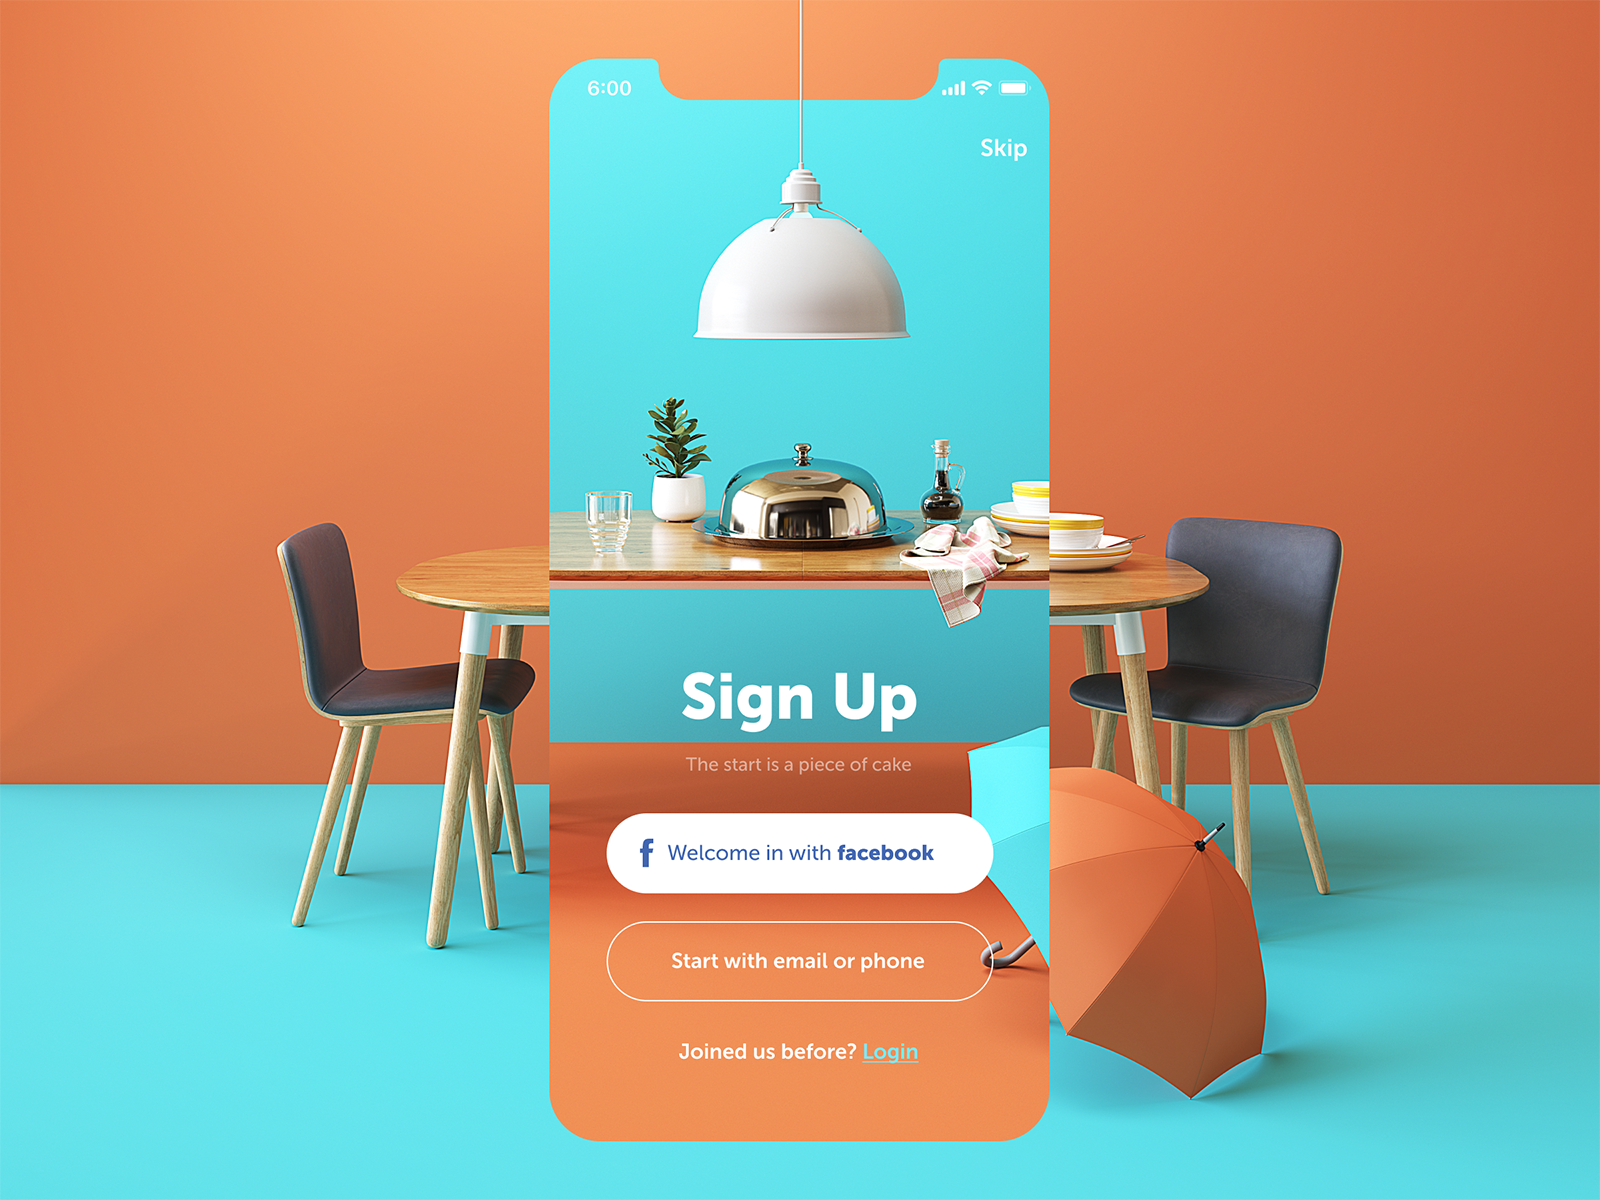 Big Review of UI Design Trends We Start 2019 With - UX Planet